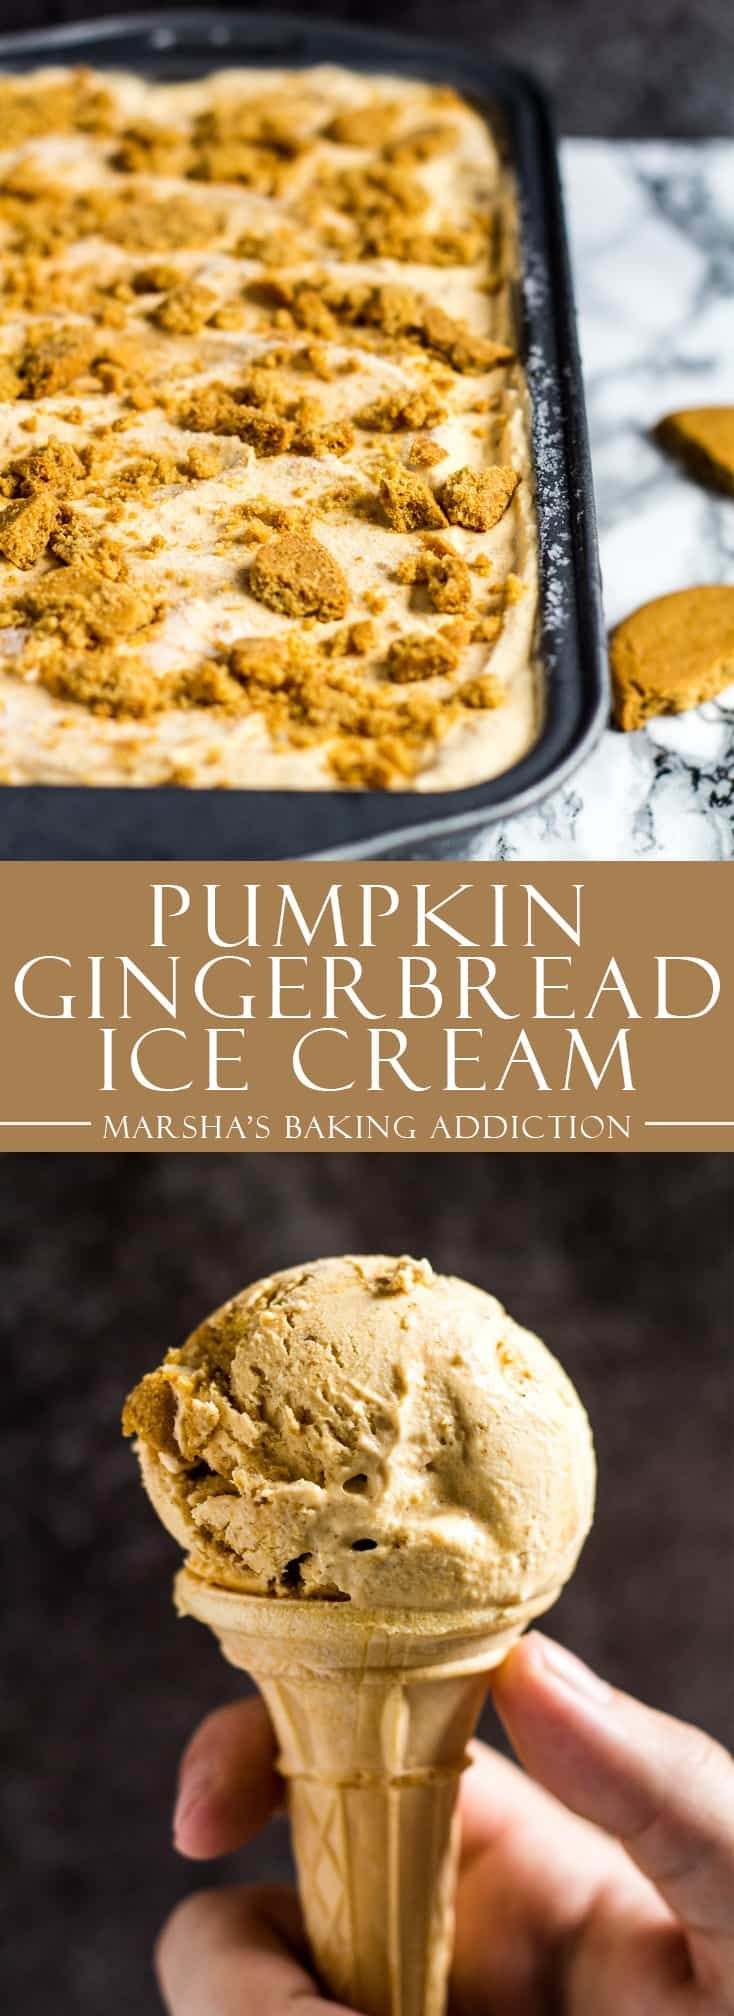 No-Churn Pumpkin Gingerbread Ice Cream - Deliciously creamy no-churn pumpkin ice cream that is perfectly spiced, and stuffed with ginger biscuits! | marshasbakingaddiction.com | @marshasbakeblog